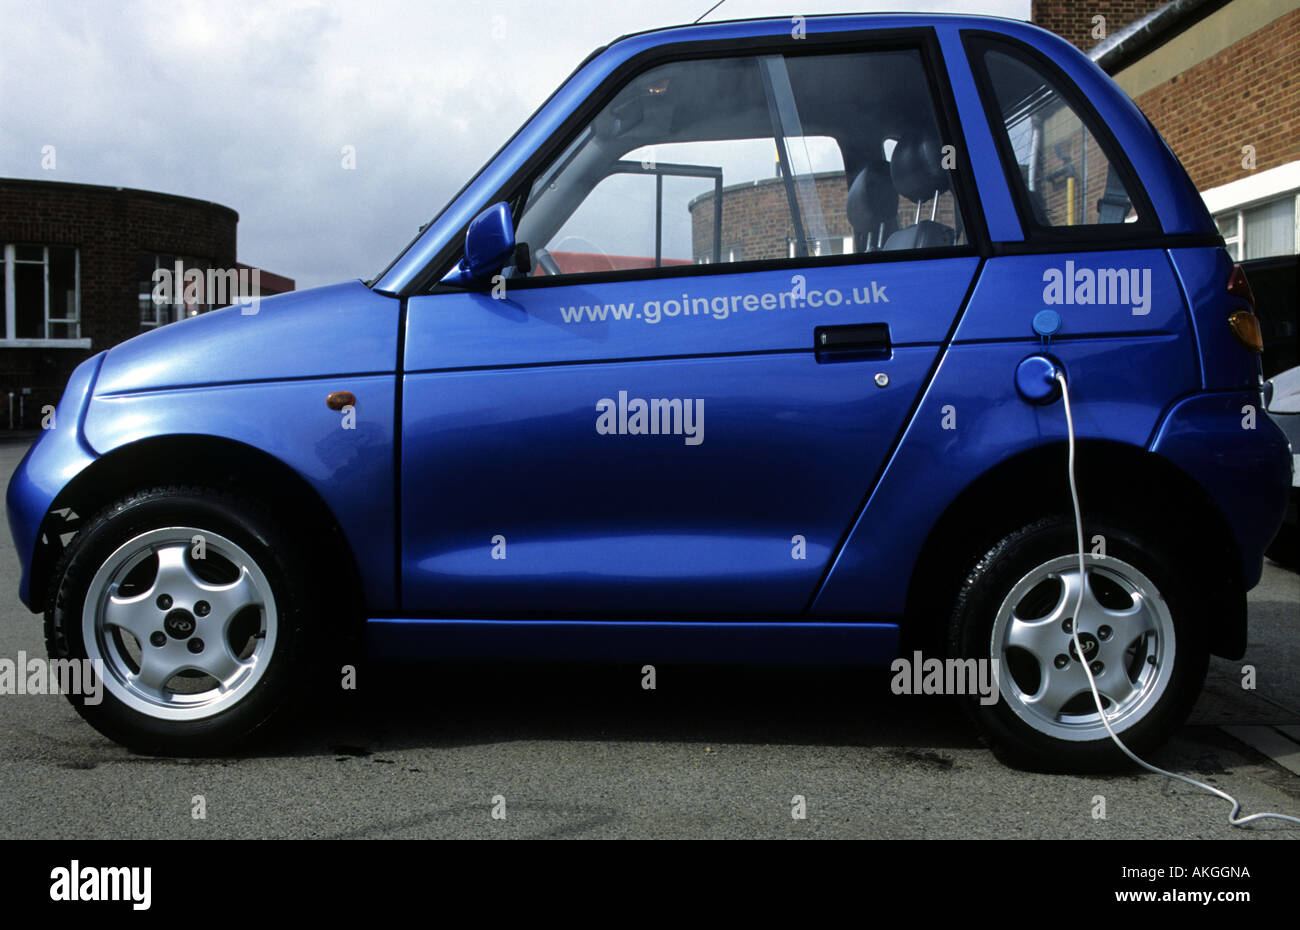 Reva G Wiz Electric Car Being Charged Stock Photo Royalty Free